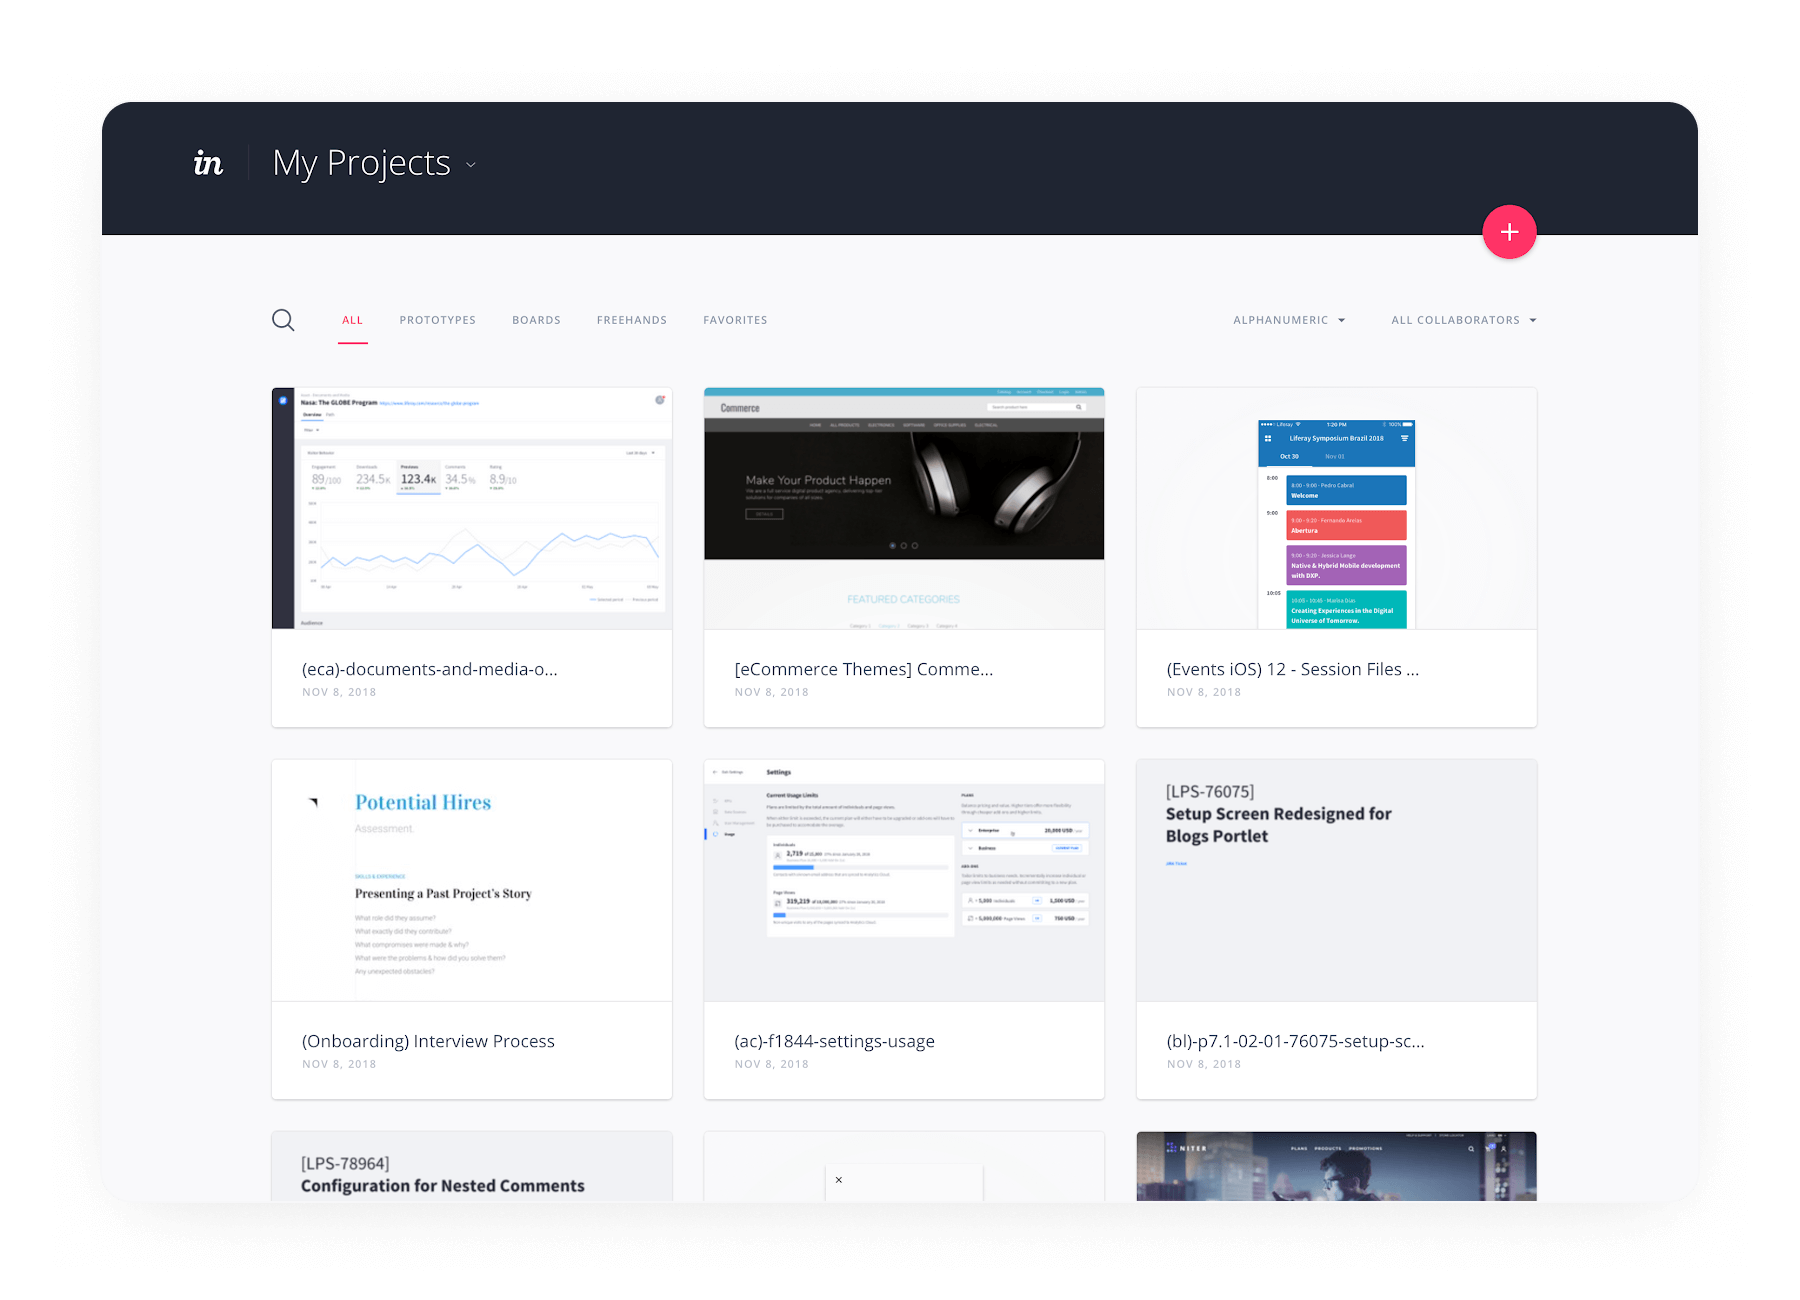 A variety of screens in Liferay's 'My Projects' InVision dashboard